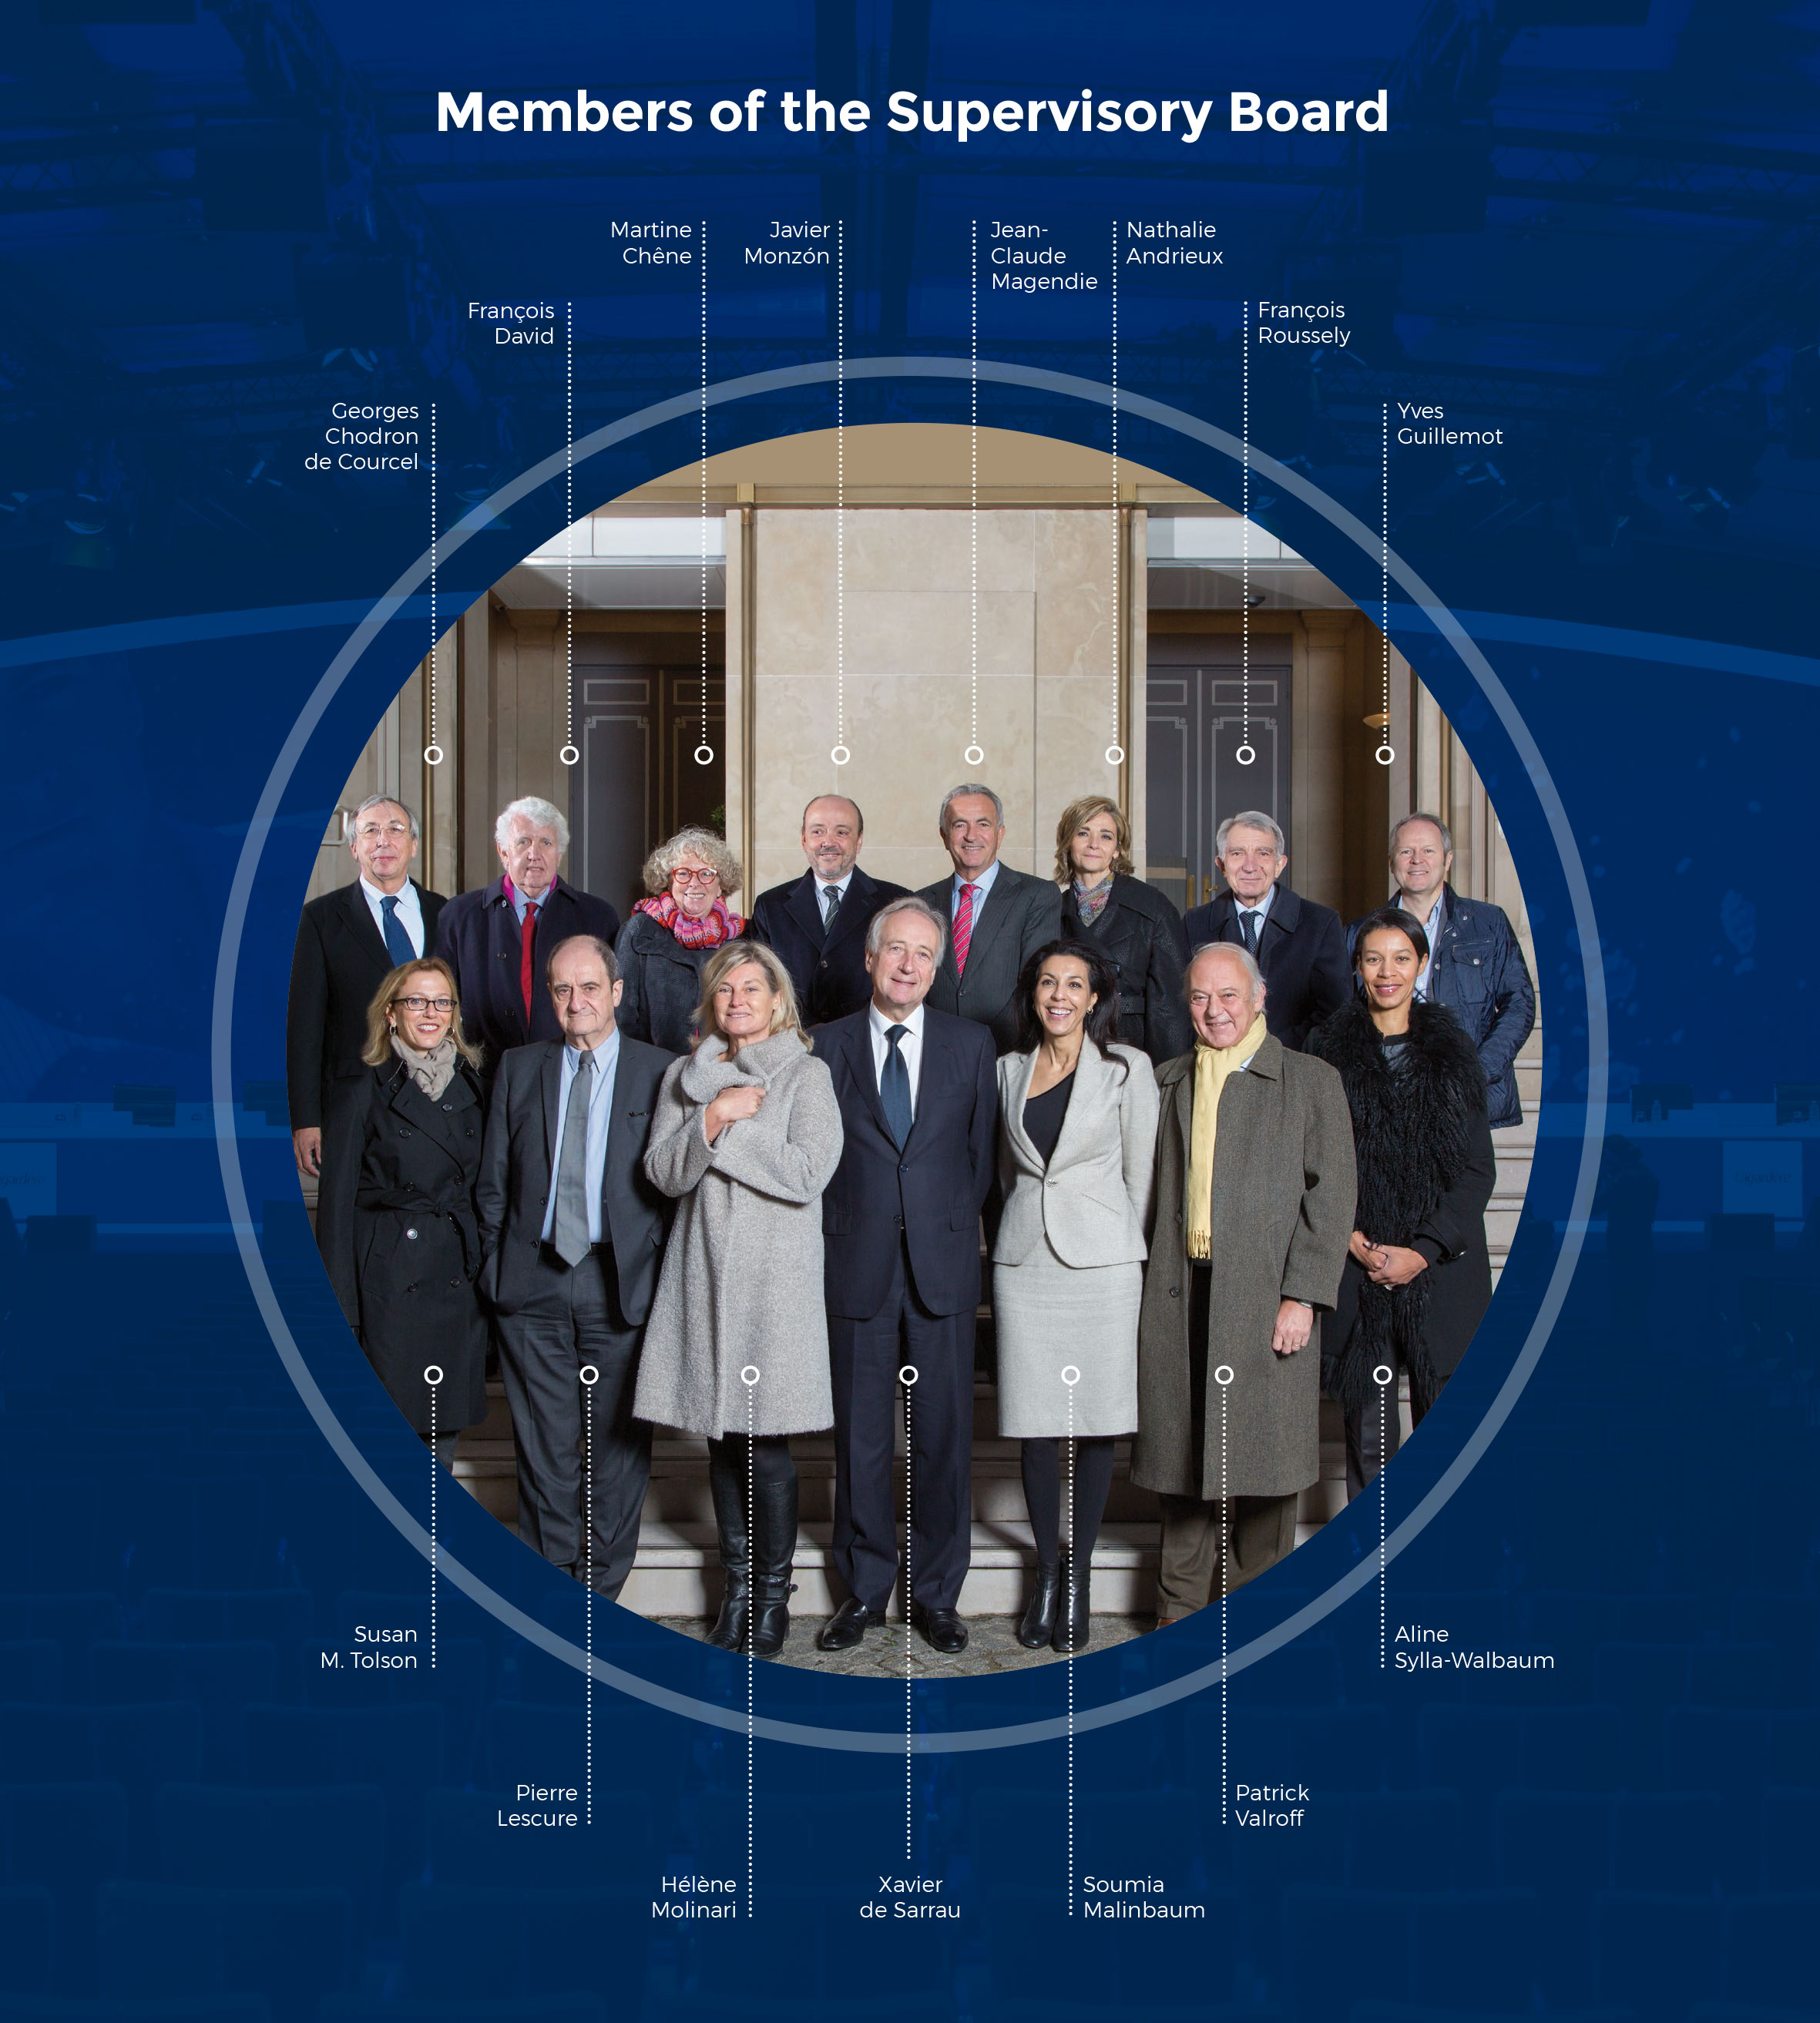 Members of the Supervisory Board